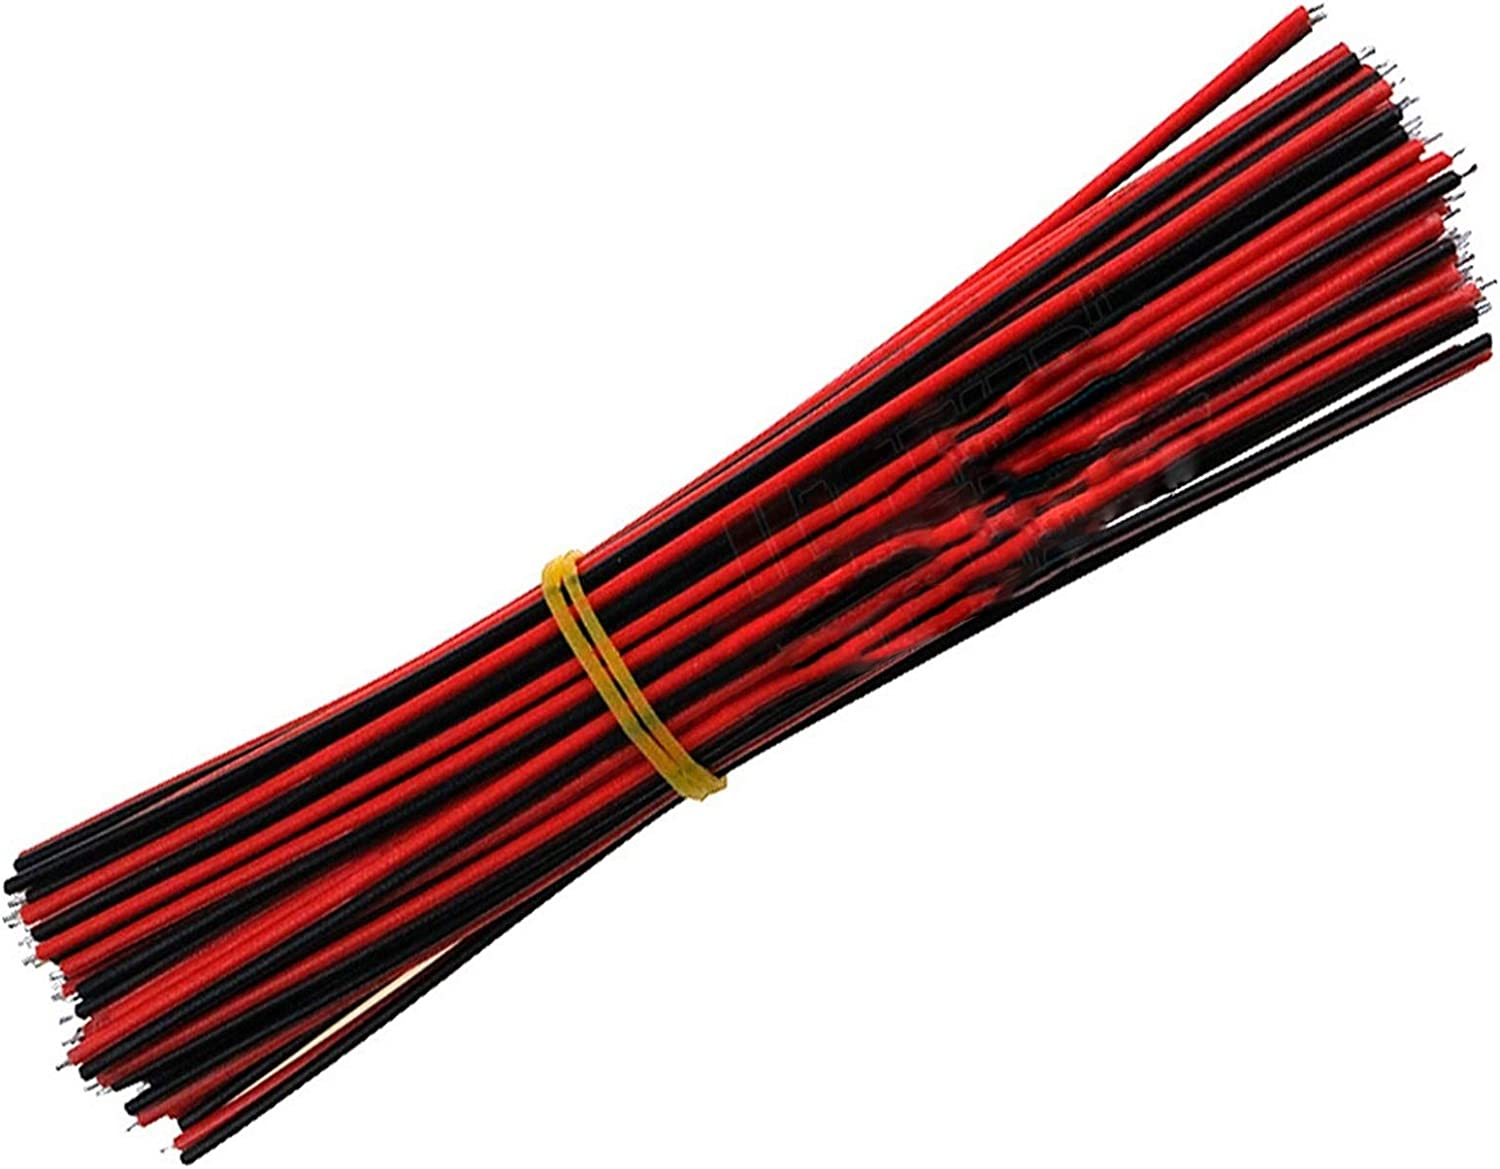 Red Black Wire AGW22 Thinned Copper Wire 2pin Wire Cable 40PCS Electronic Cablb Extend Wire for Sound Power Tool Accessories 10CM PYouo-Copper Wire